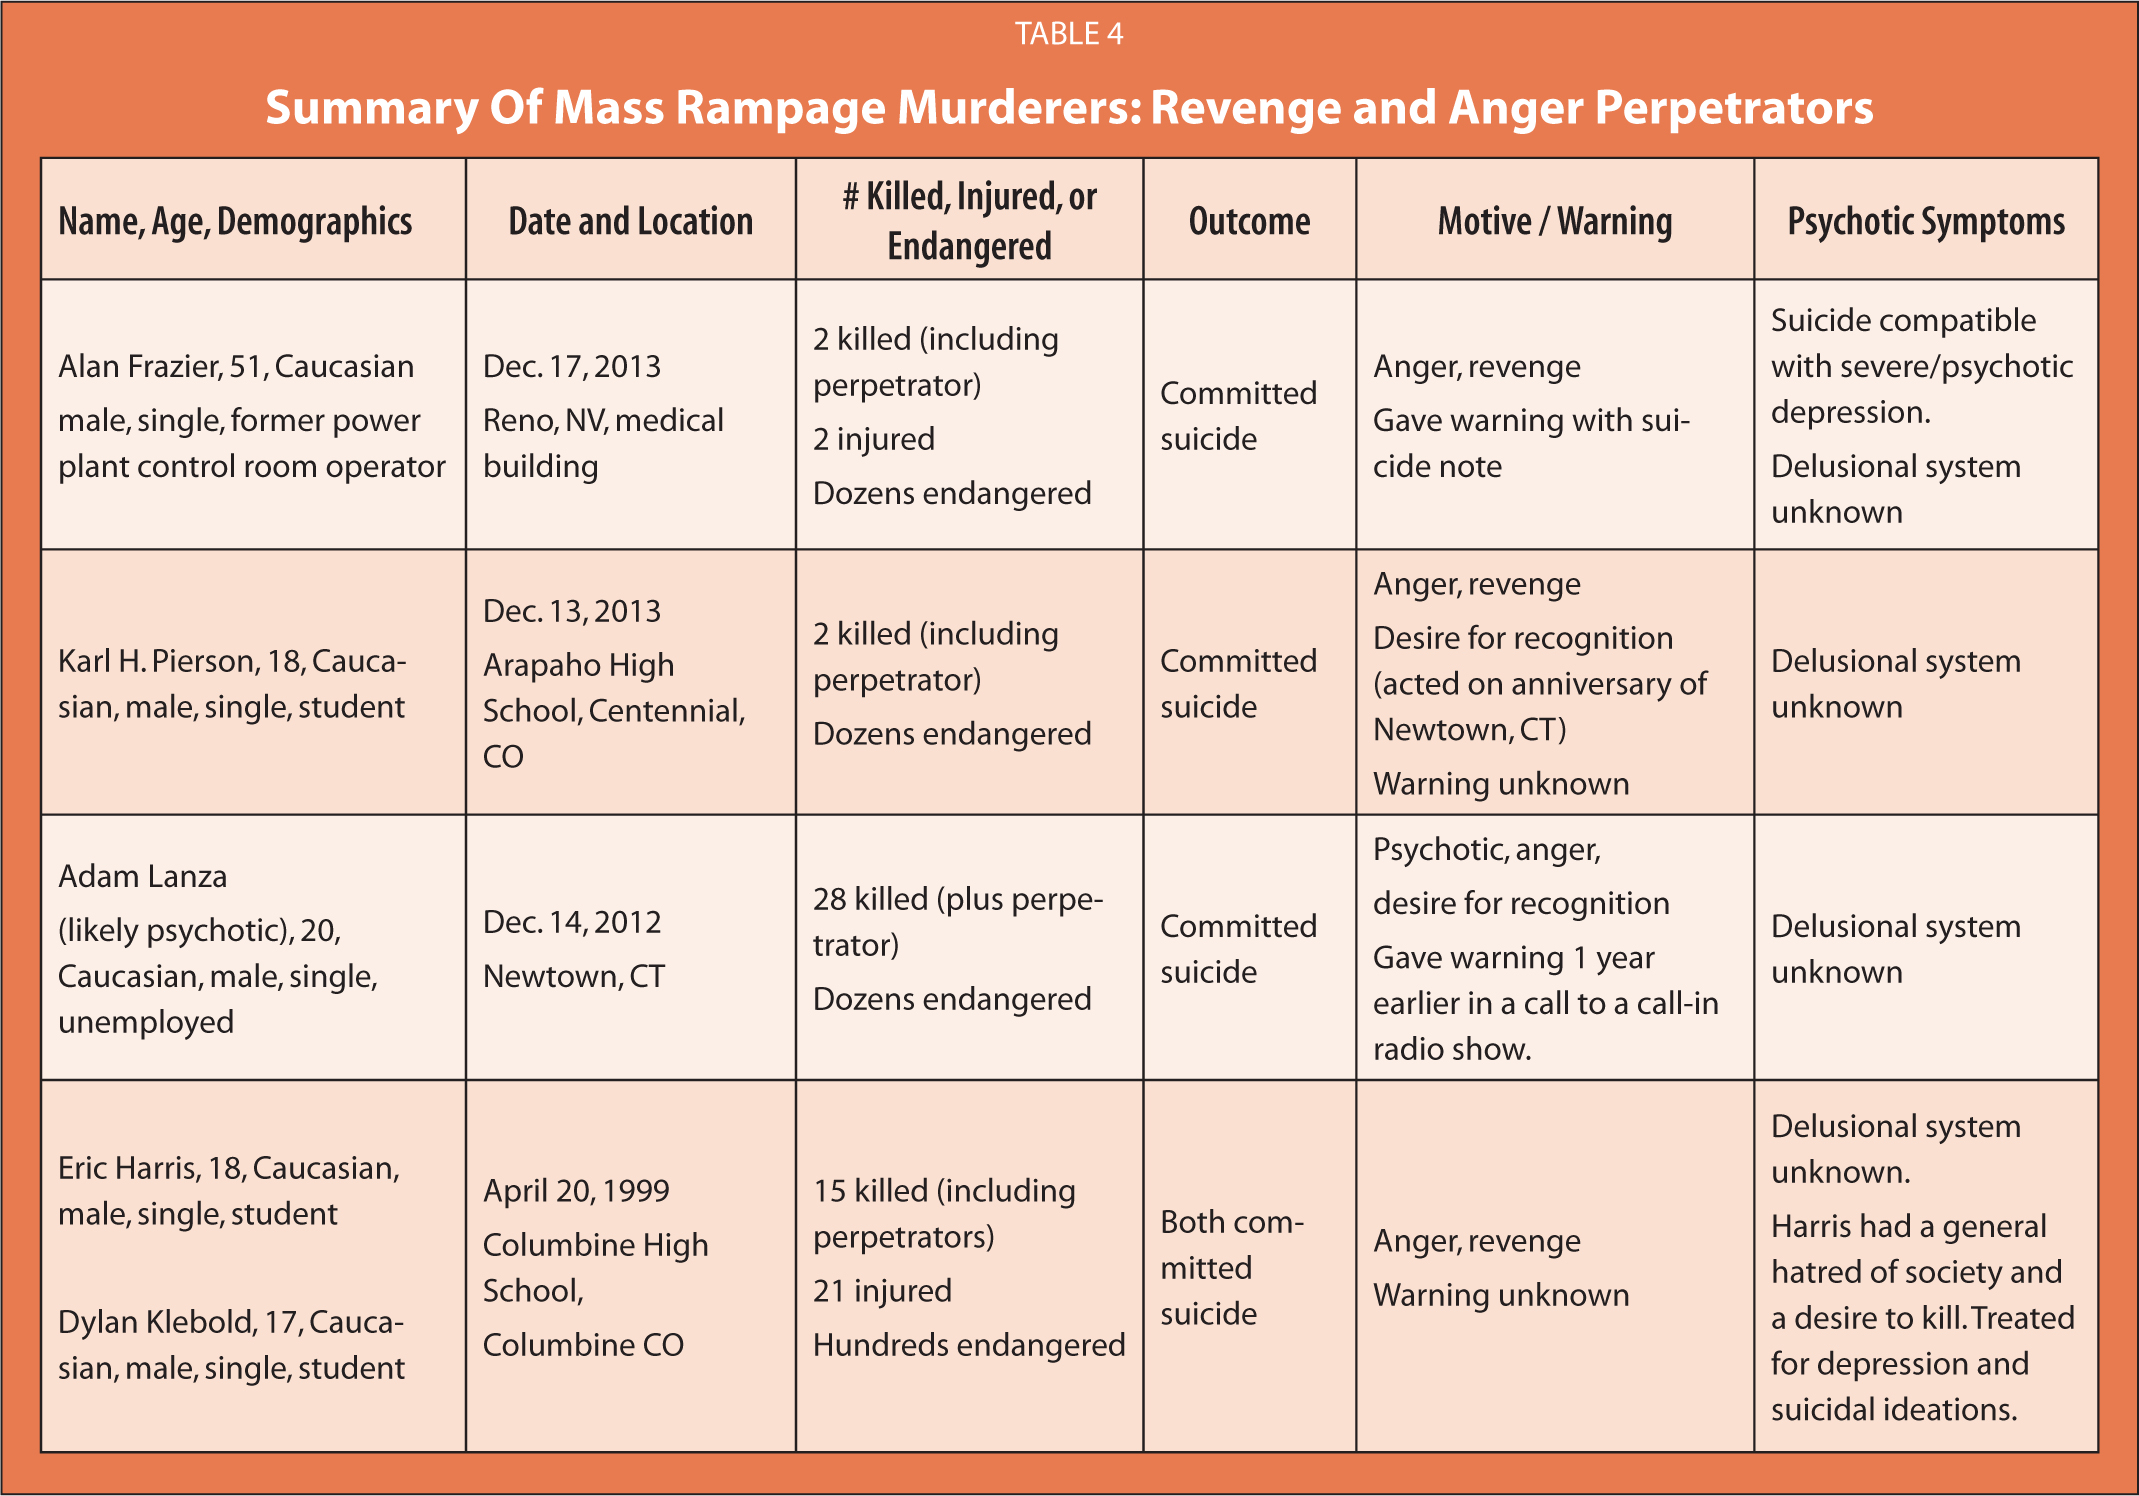 Summary Of Mass Rampage Murderers: Revenge and Anger Perpetrators